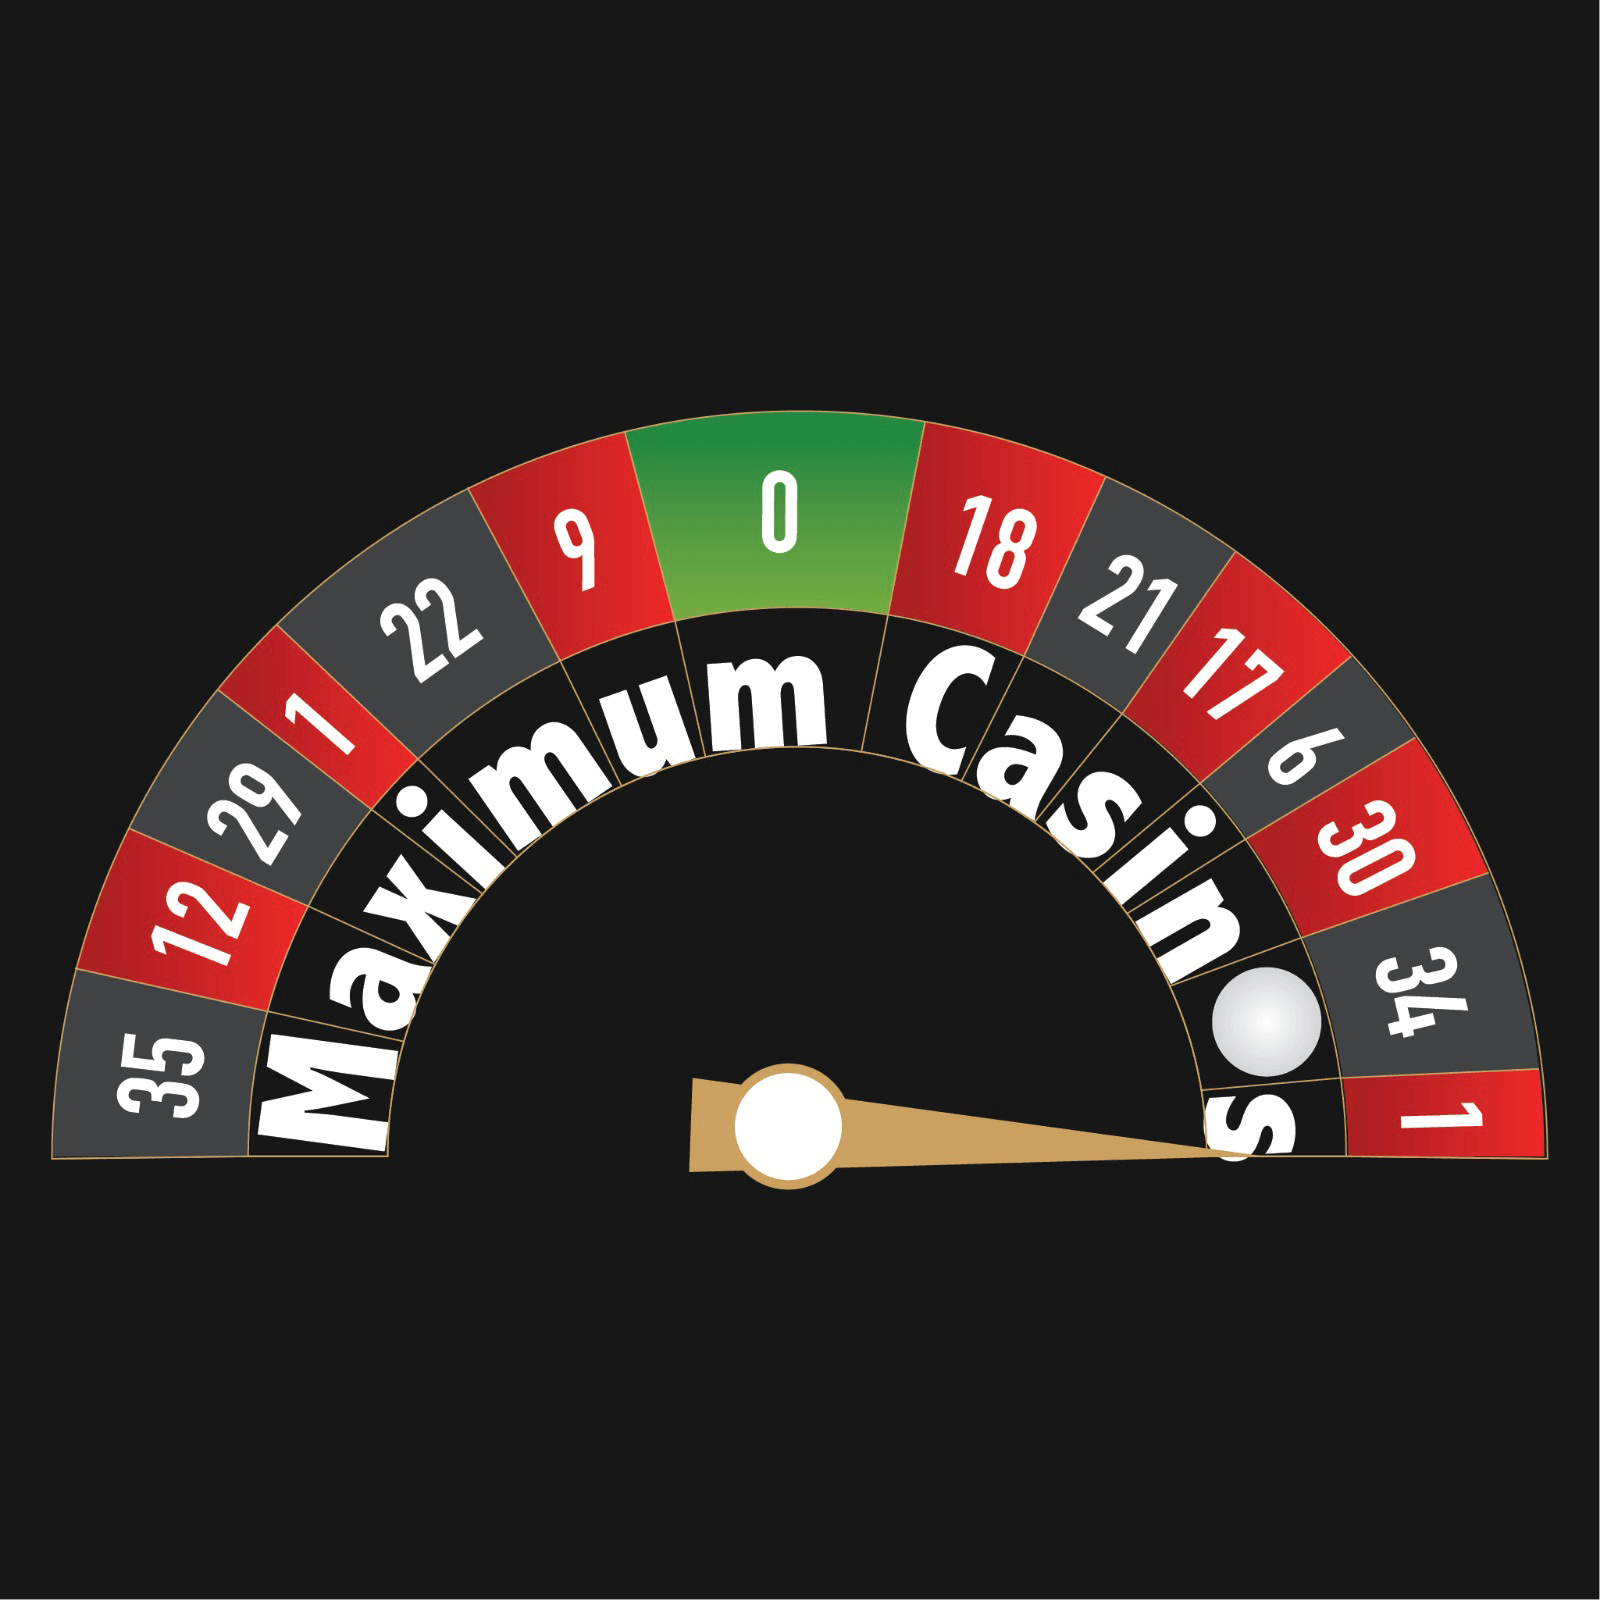 https://maximumcasinos.com/credit-card-casinos/